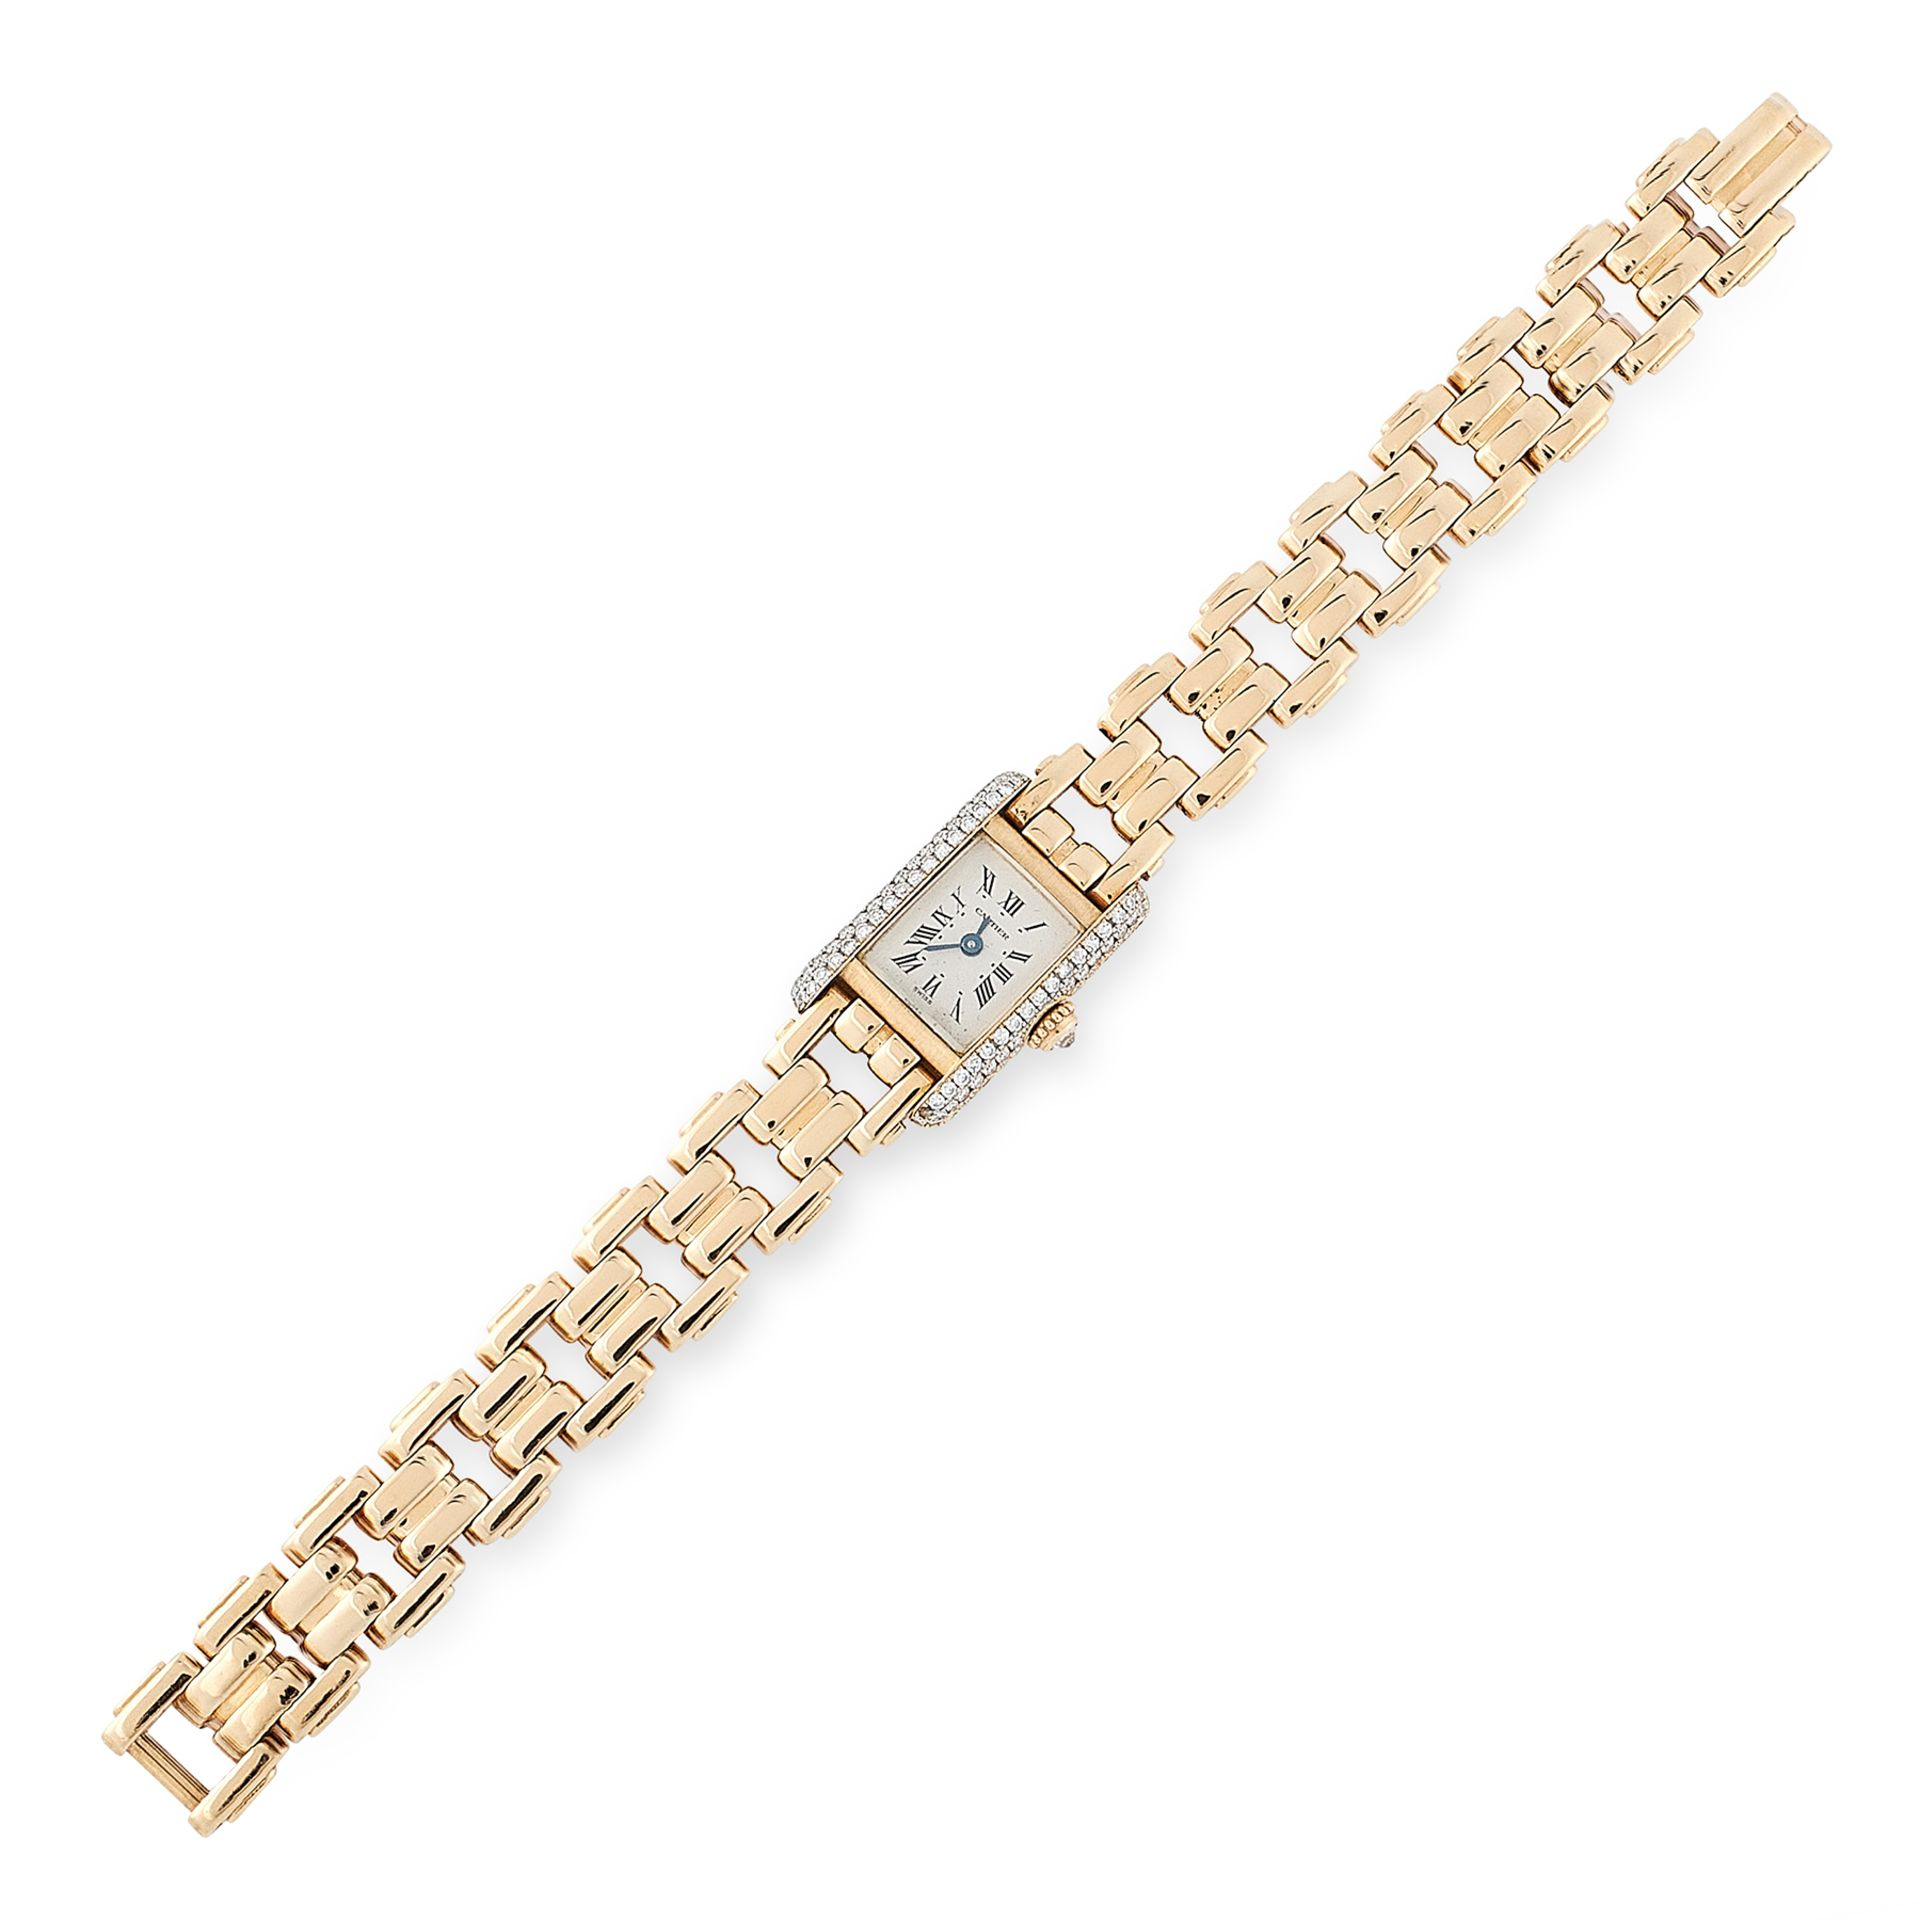 Los 5 - A LADIES DIAMOND TANK WRIST WATCH, CARTIER in 18ct yellow gold, the rectangular case jewelled on